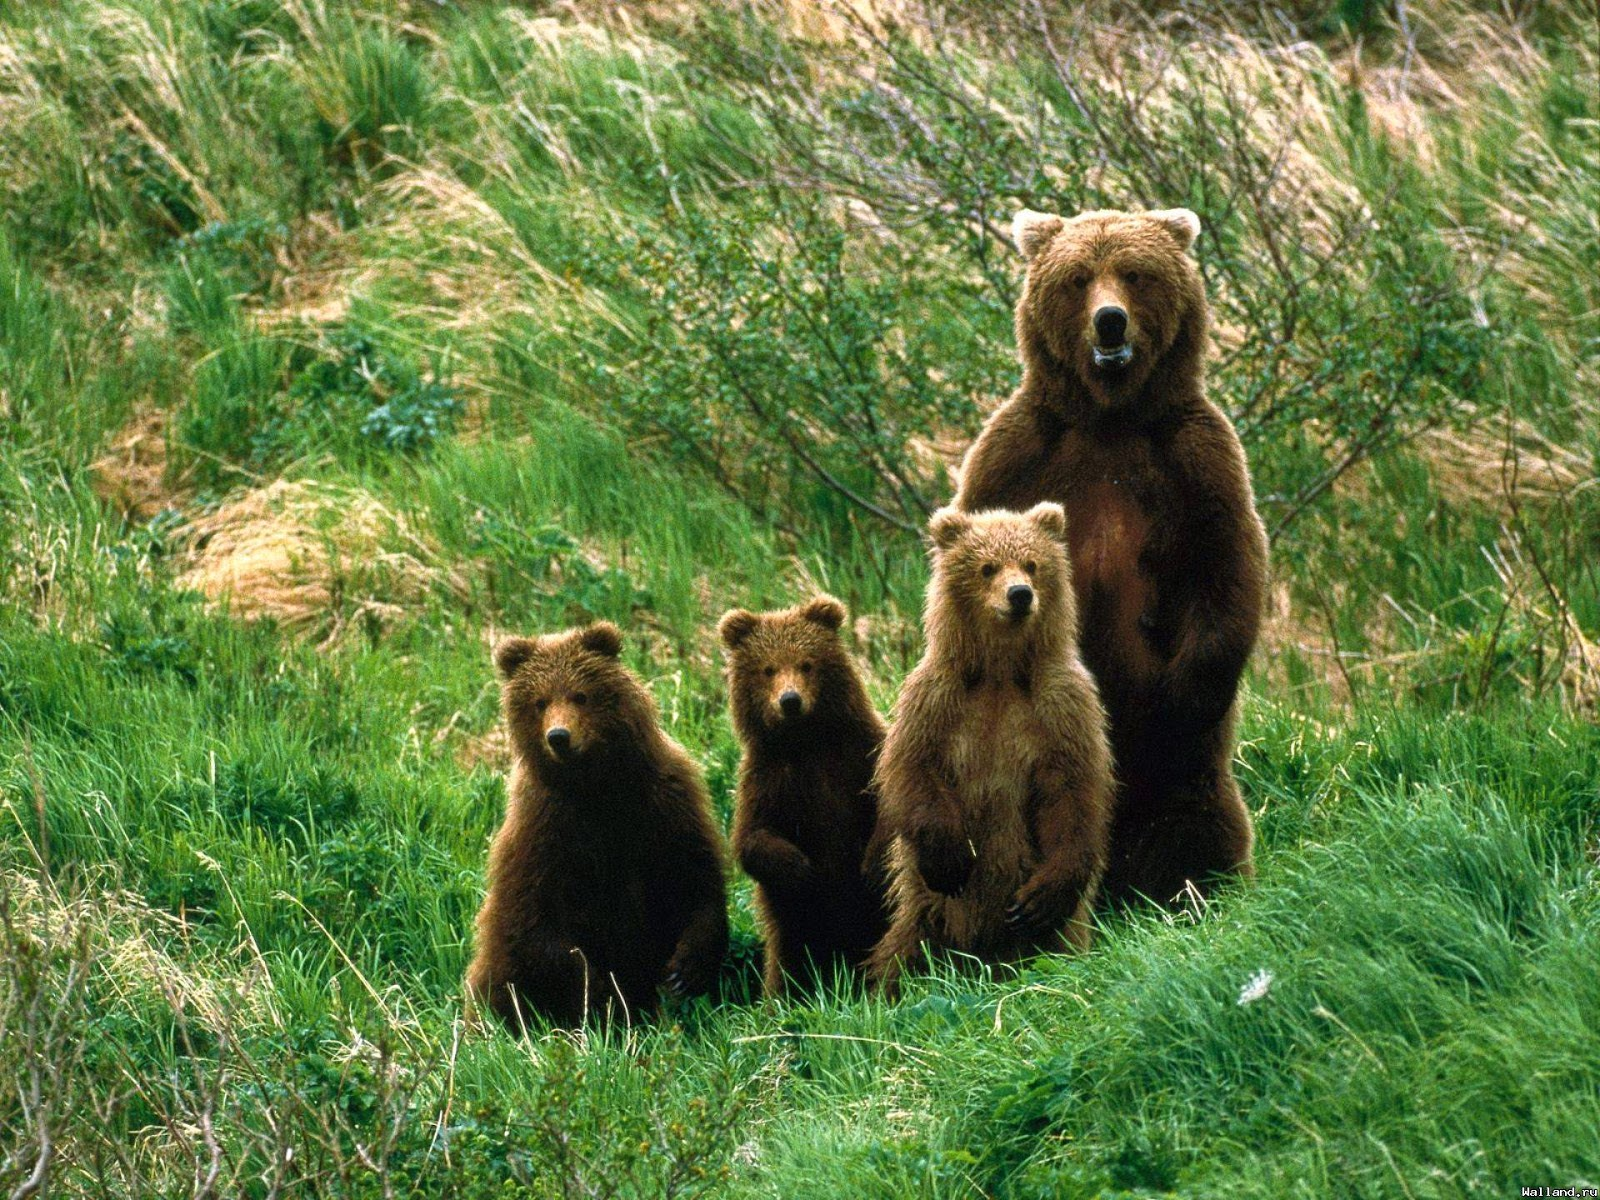 Download baby bear free images from StockFreeImages. Many free stock images added daily!